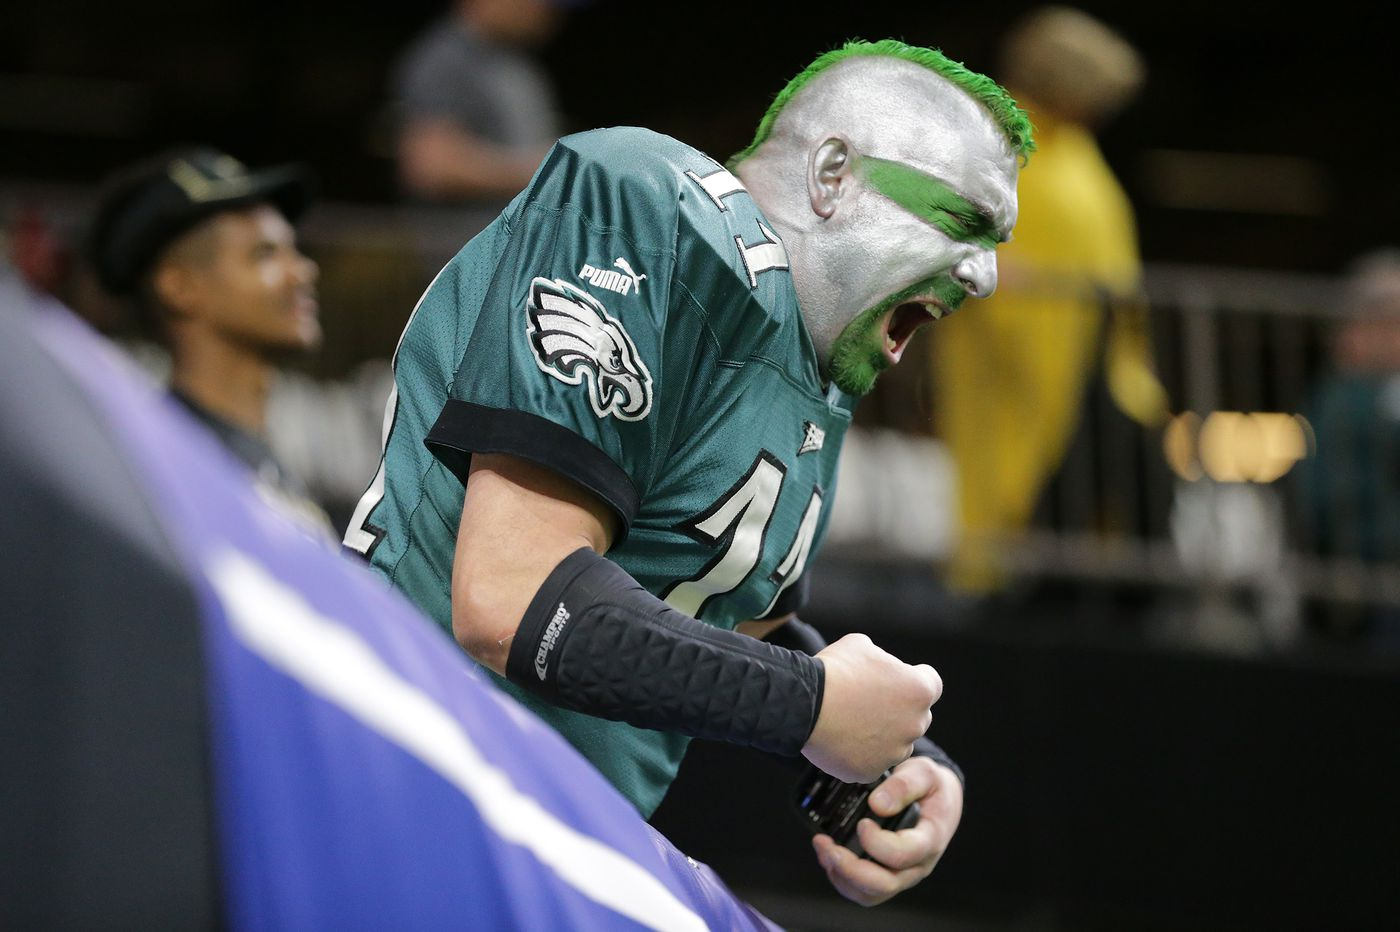 Despite a loss, Philly and fans show Eagles love